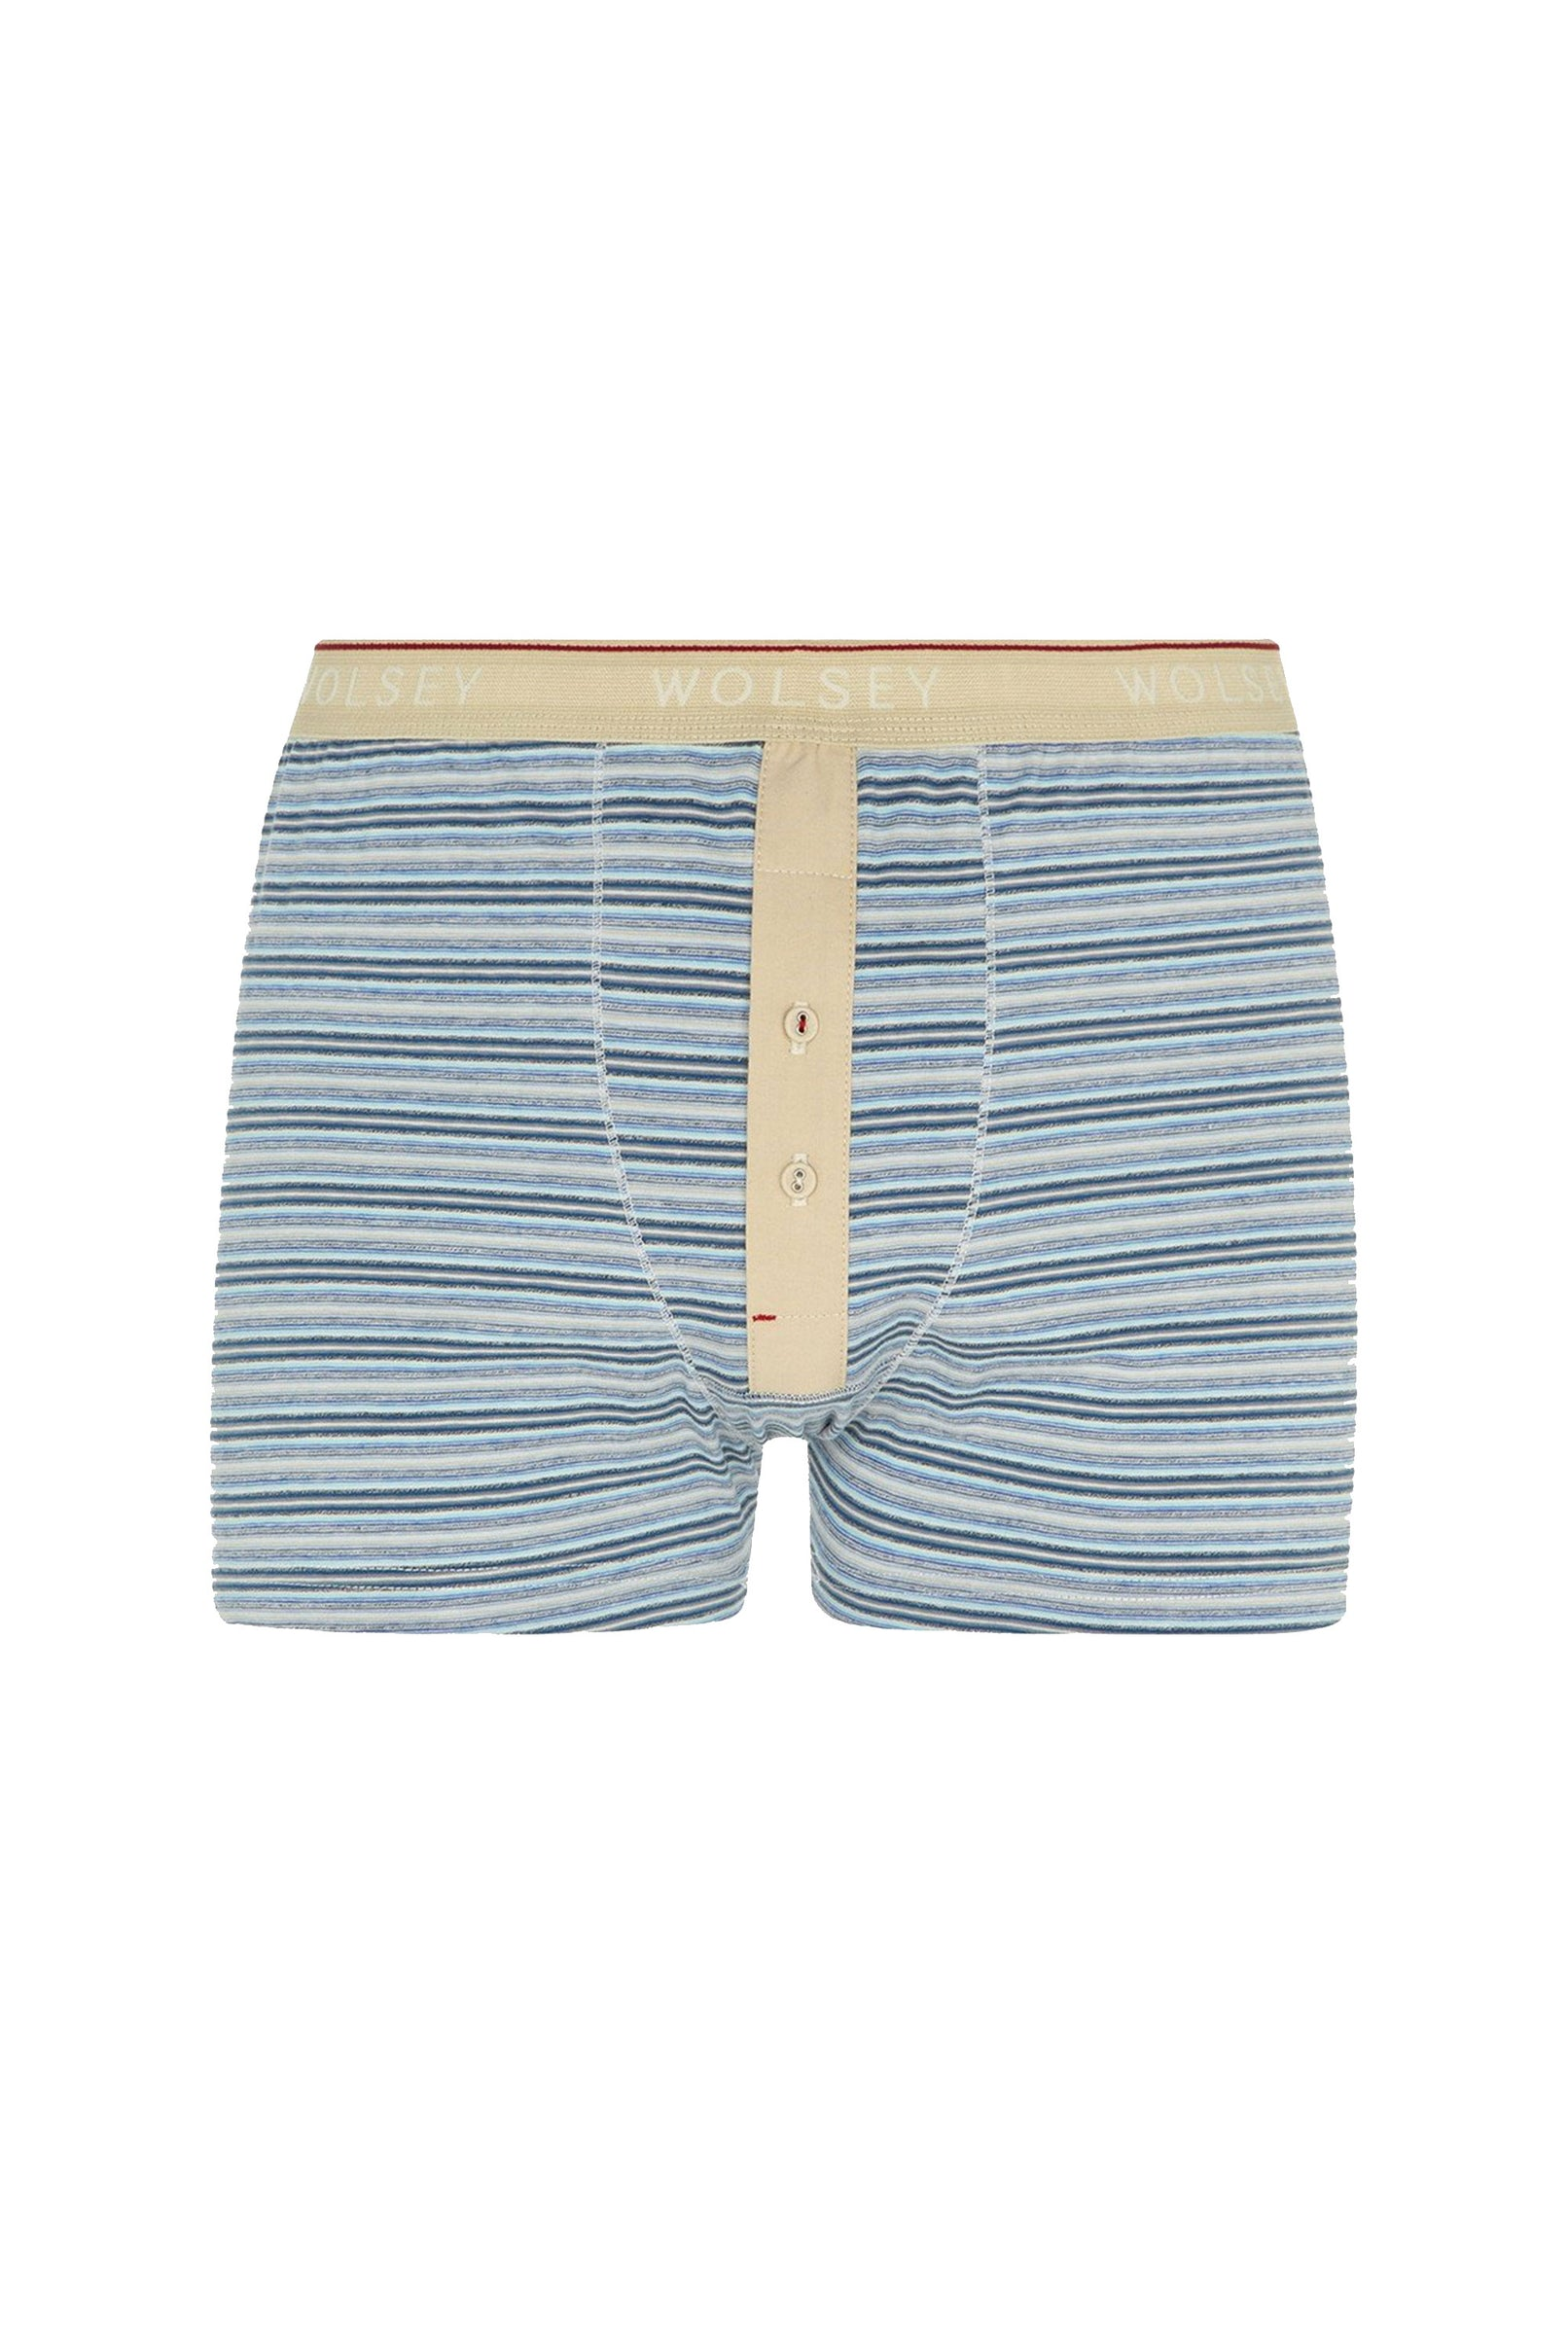 Blueprint Vintage Boxer Brief